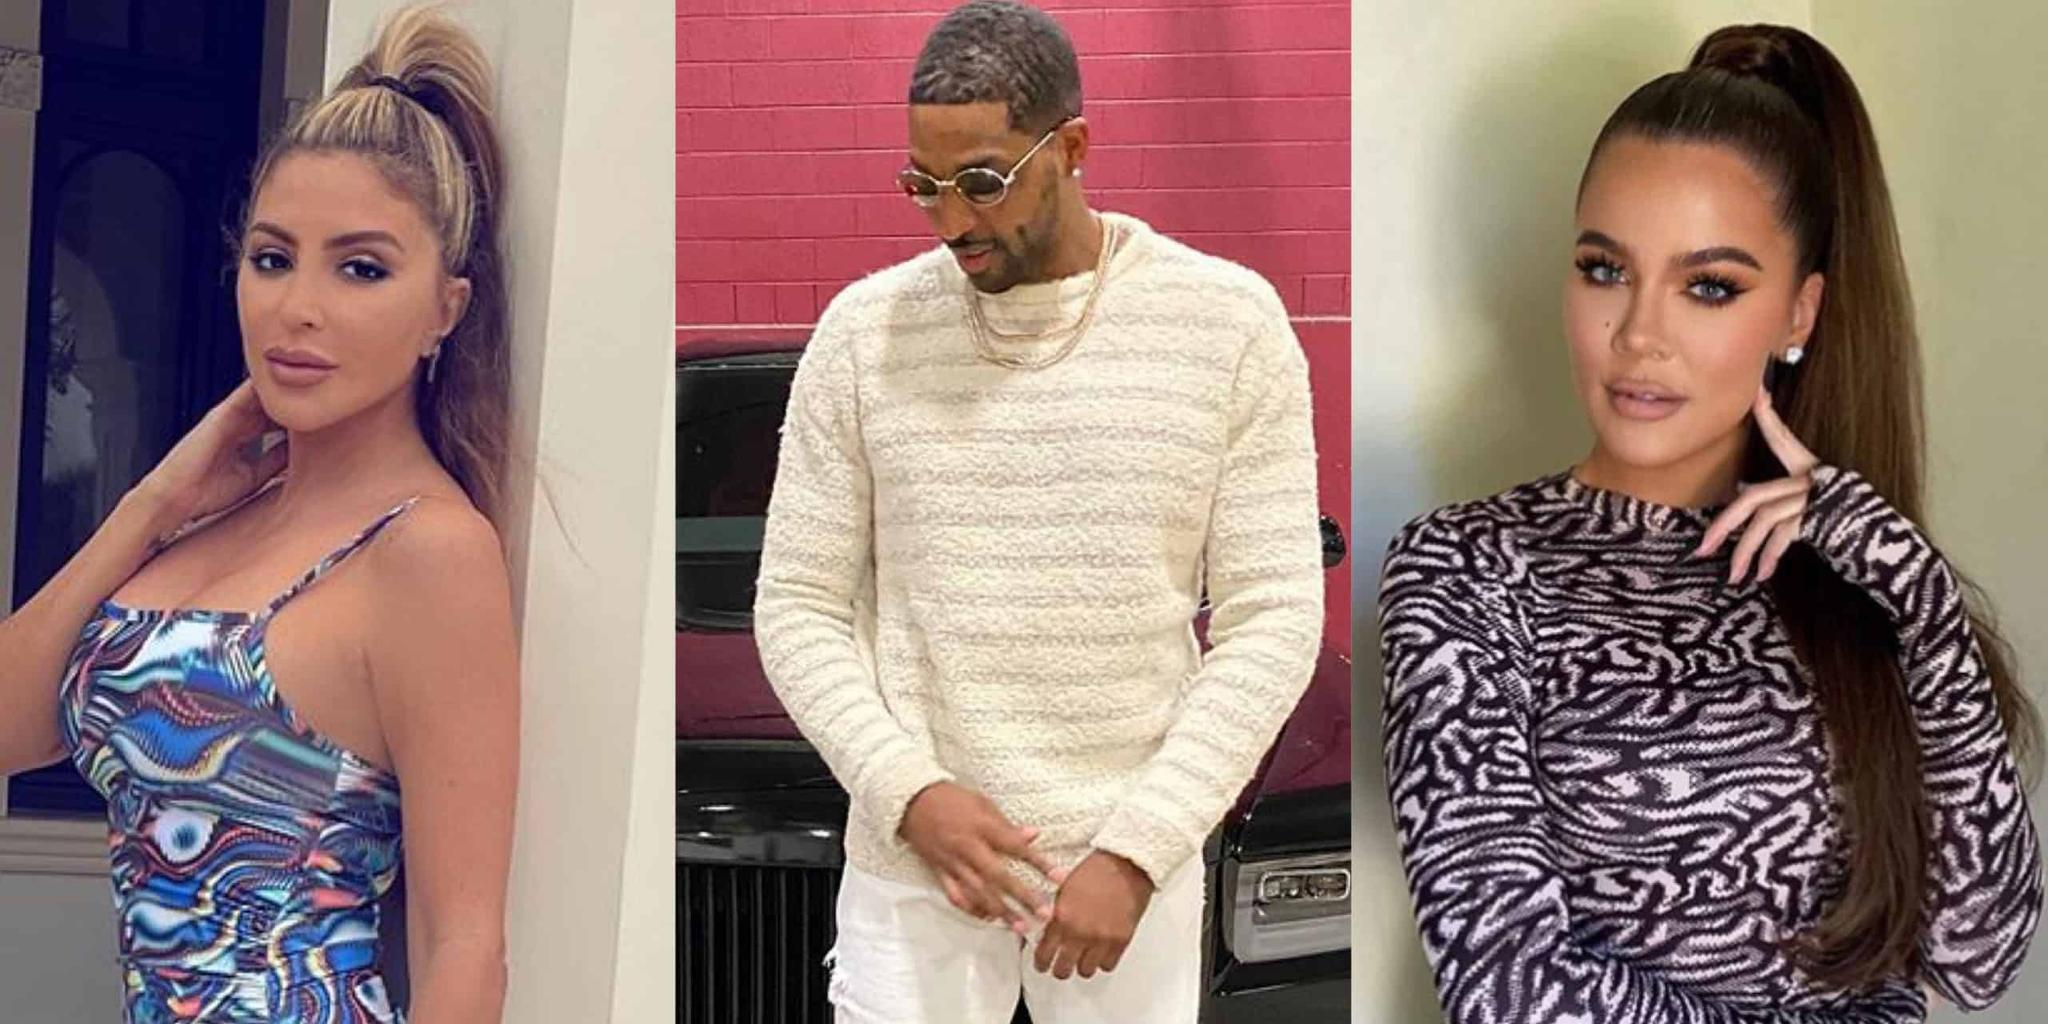 KUWTK: Larsa Pippen Says She And Tristan Thompson Dated And That She Introduced Him To Khloe Kardashian!